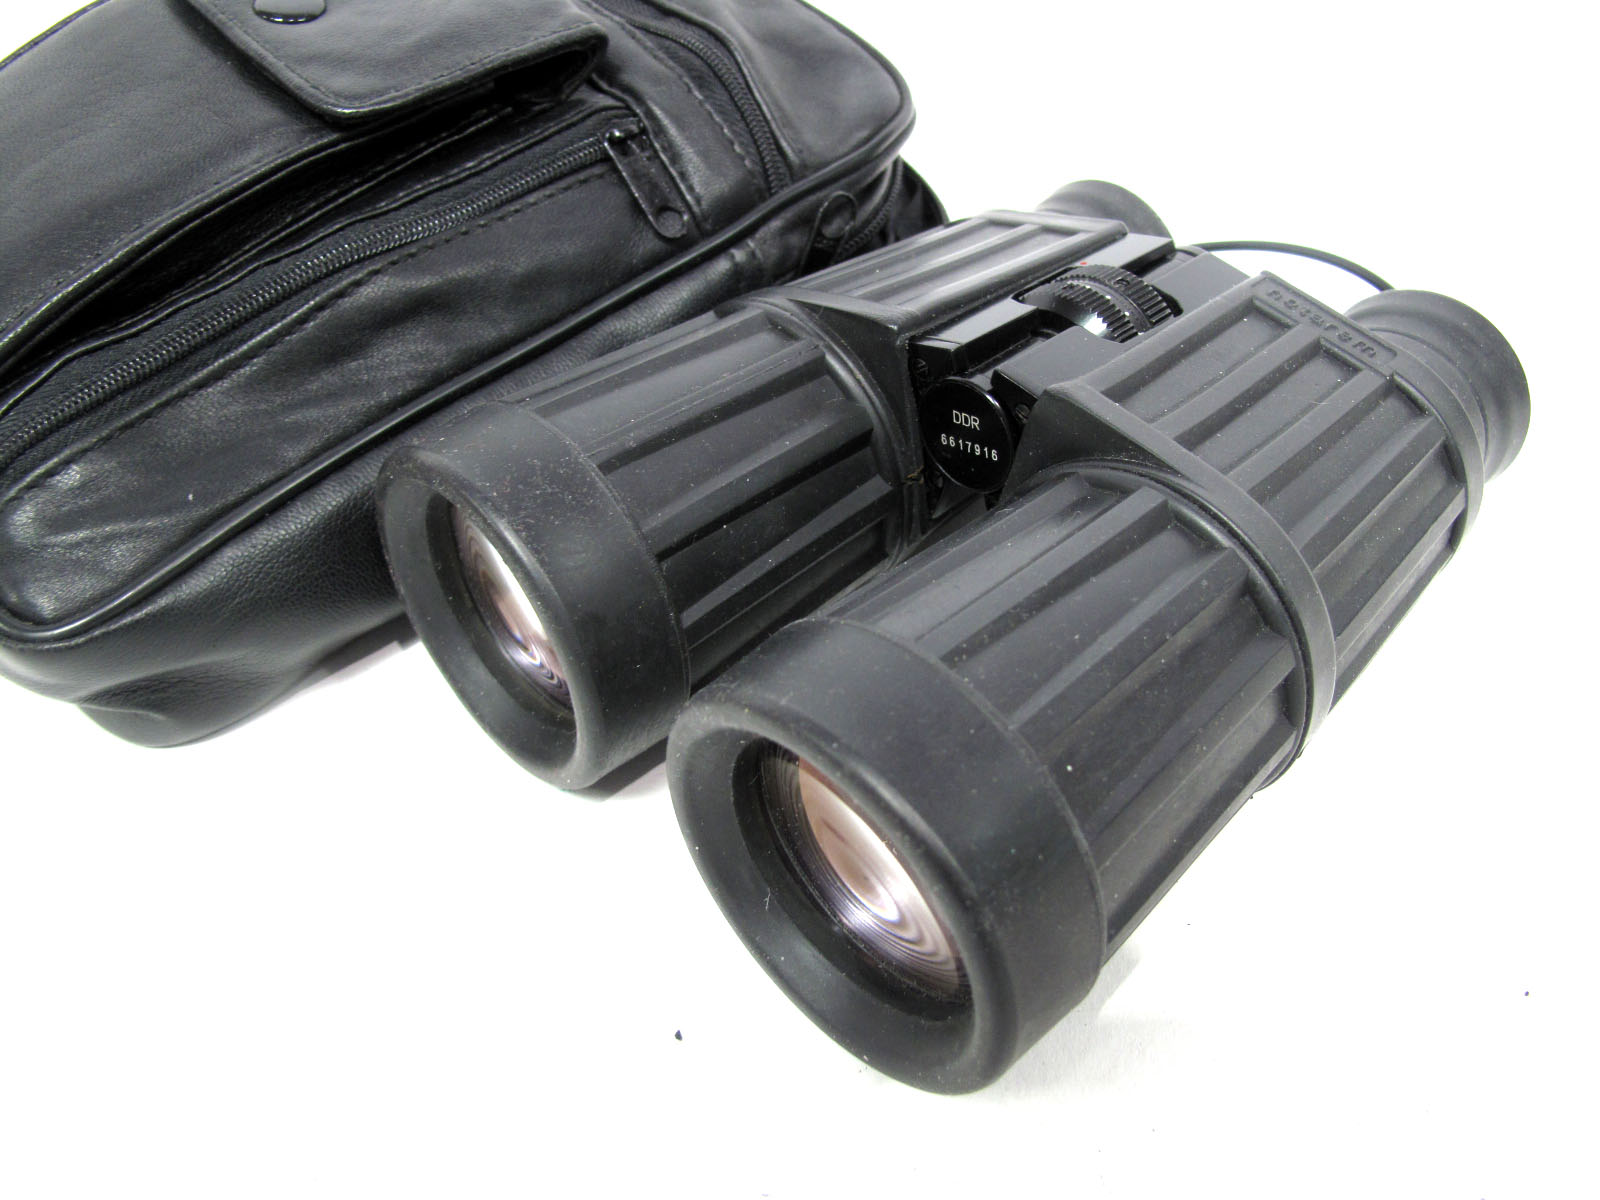 Binoculars Carl Zeiss Jena Notarem, 10 x 40 B in black leather case.